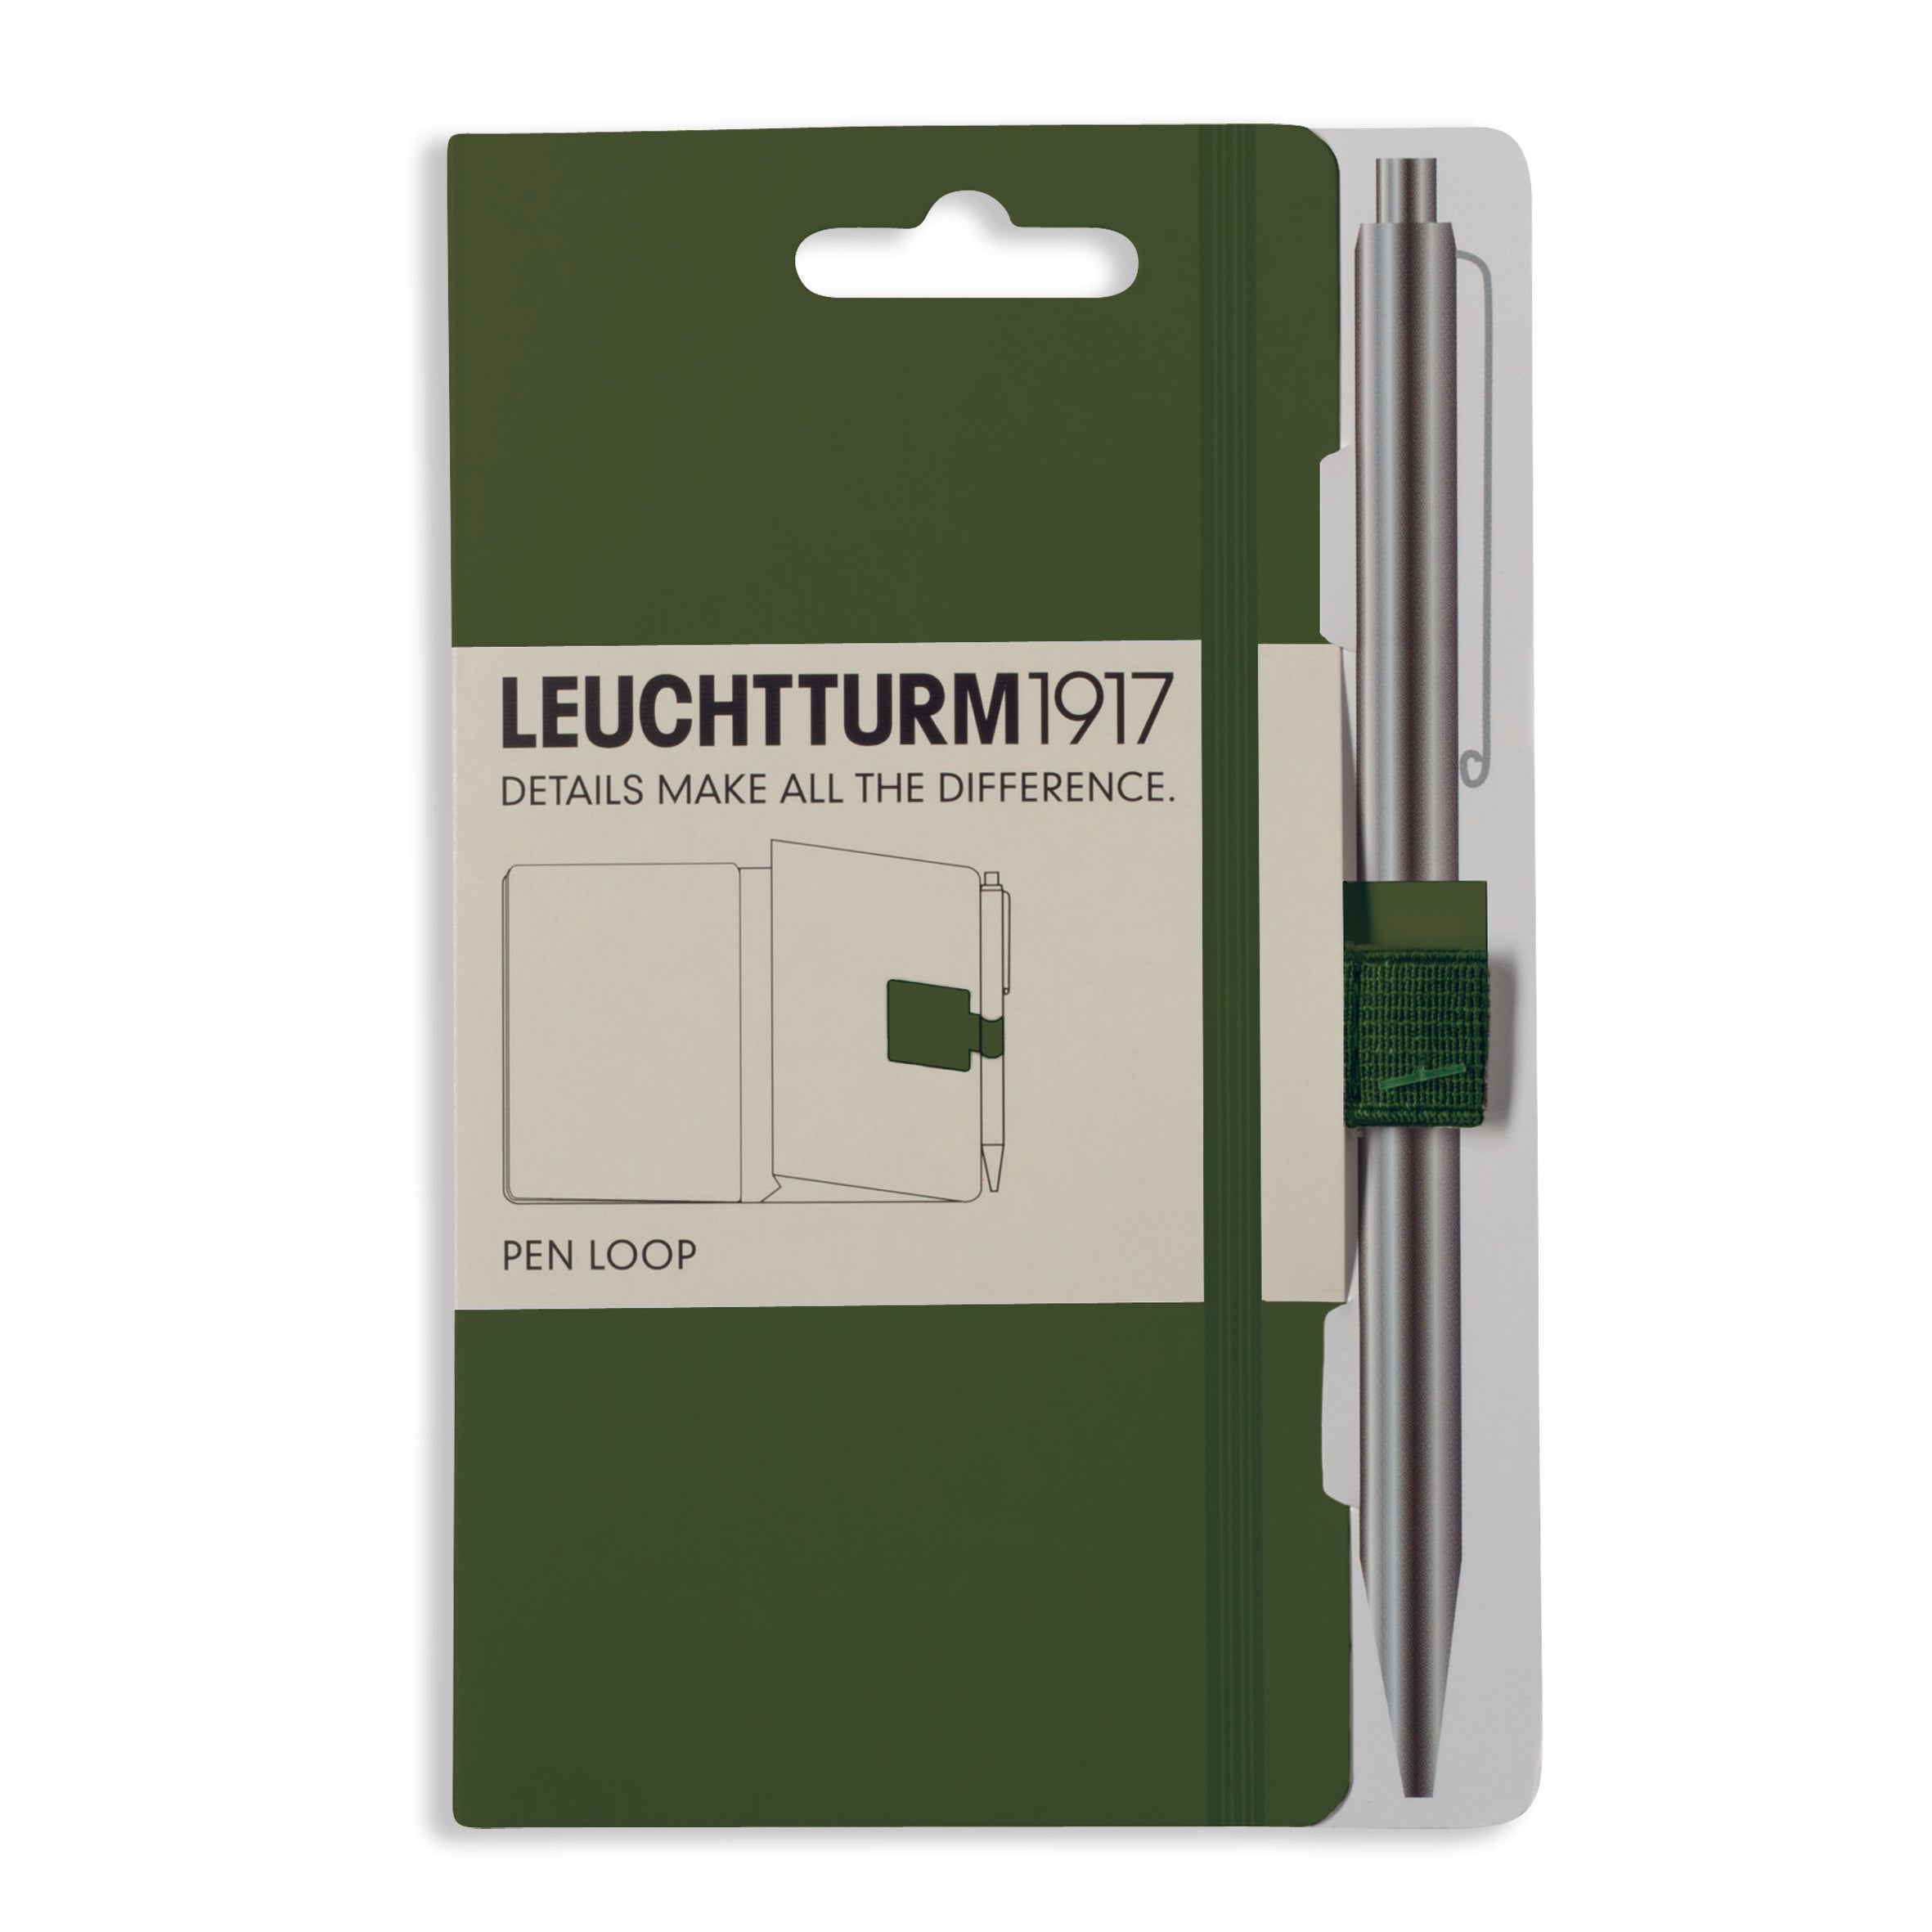 Pen Loop, Assorted Colors, Leuchtturm1917